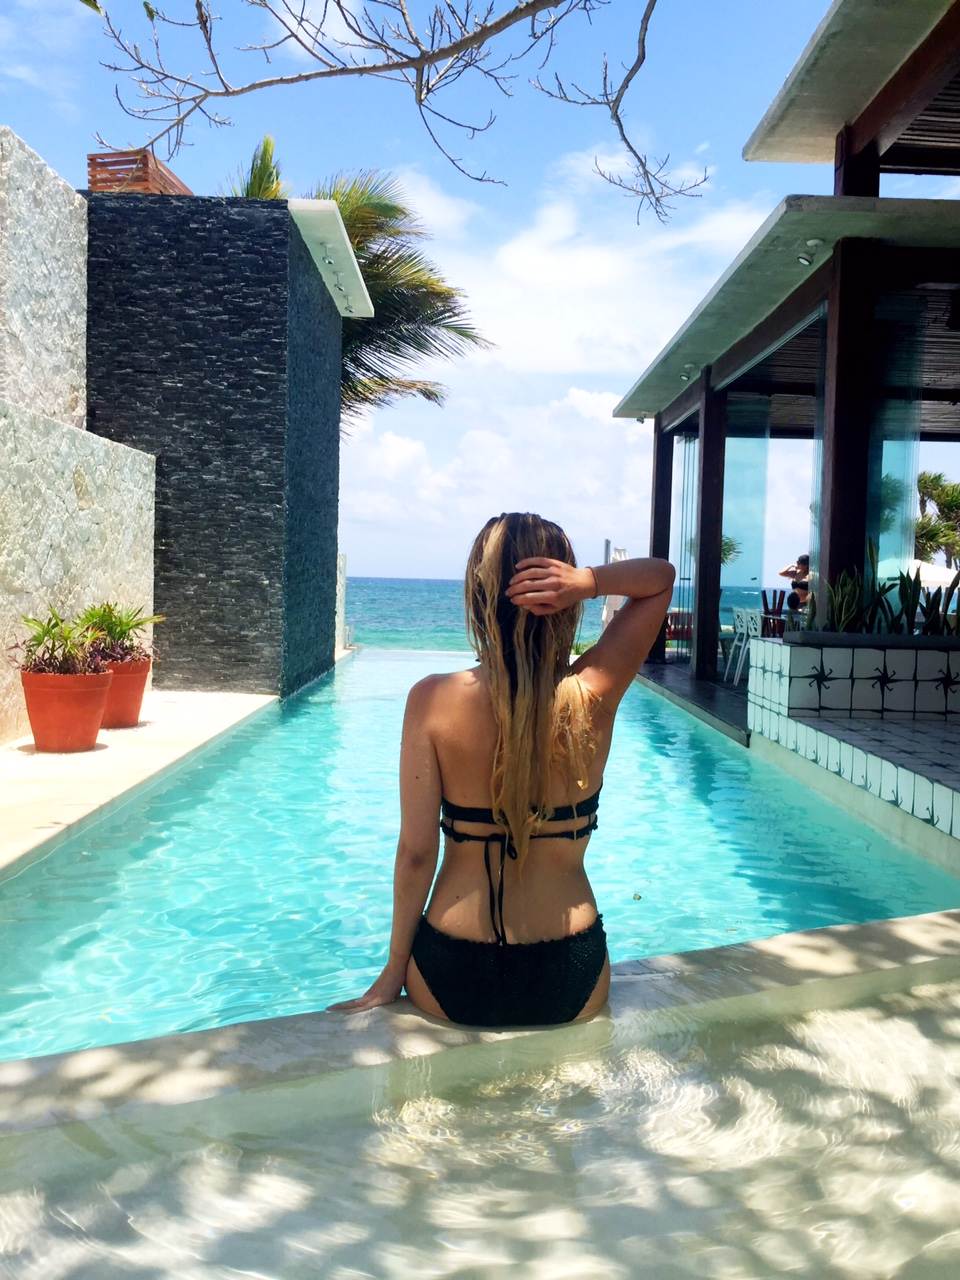 tulum_models_tulum photoshoot_fashion blogger_travel blogger_go pro_tulum mexico_ahau tulum_be tulum_mi amor tulum_savvy javvy_posado margherita_villa las estrellas_hartwood tulum_mayan ruins_tulum ruins